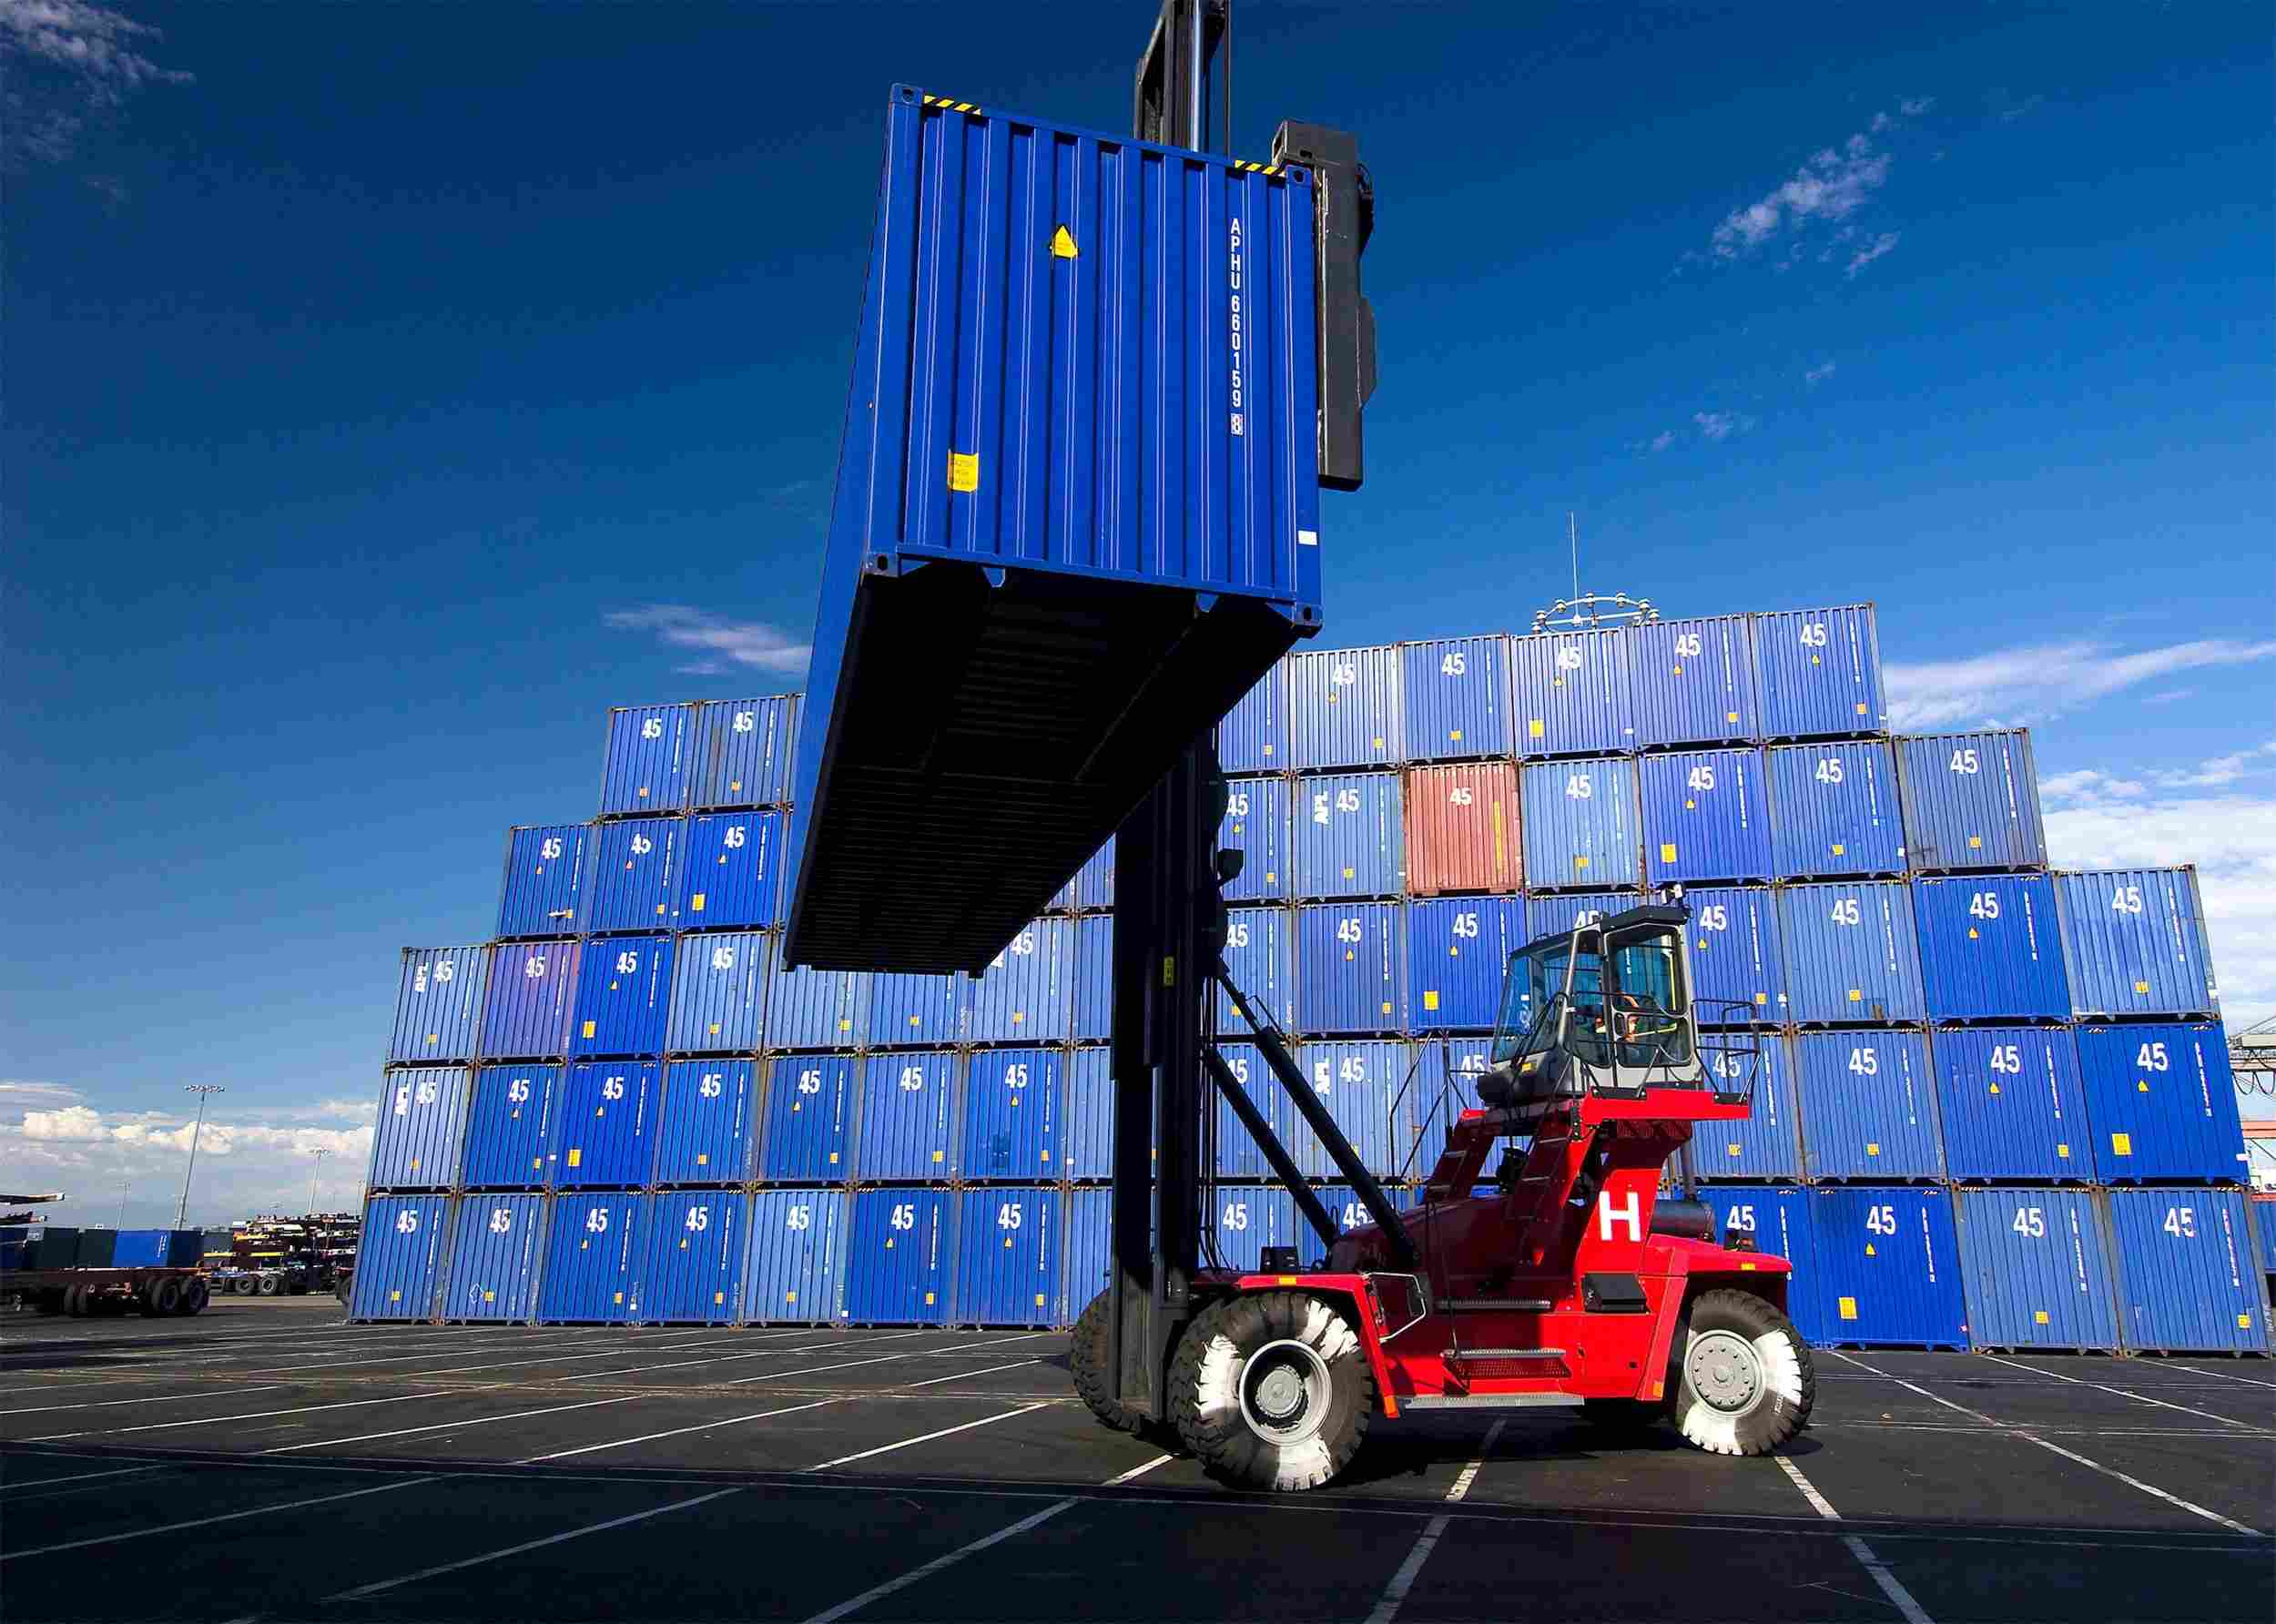 https://euro-cargo.eu/wp-content/uploads/2015/09/Red-lifter-blue-boxes-with-blue-sky.jpg